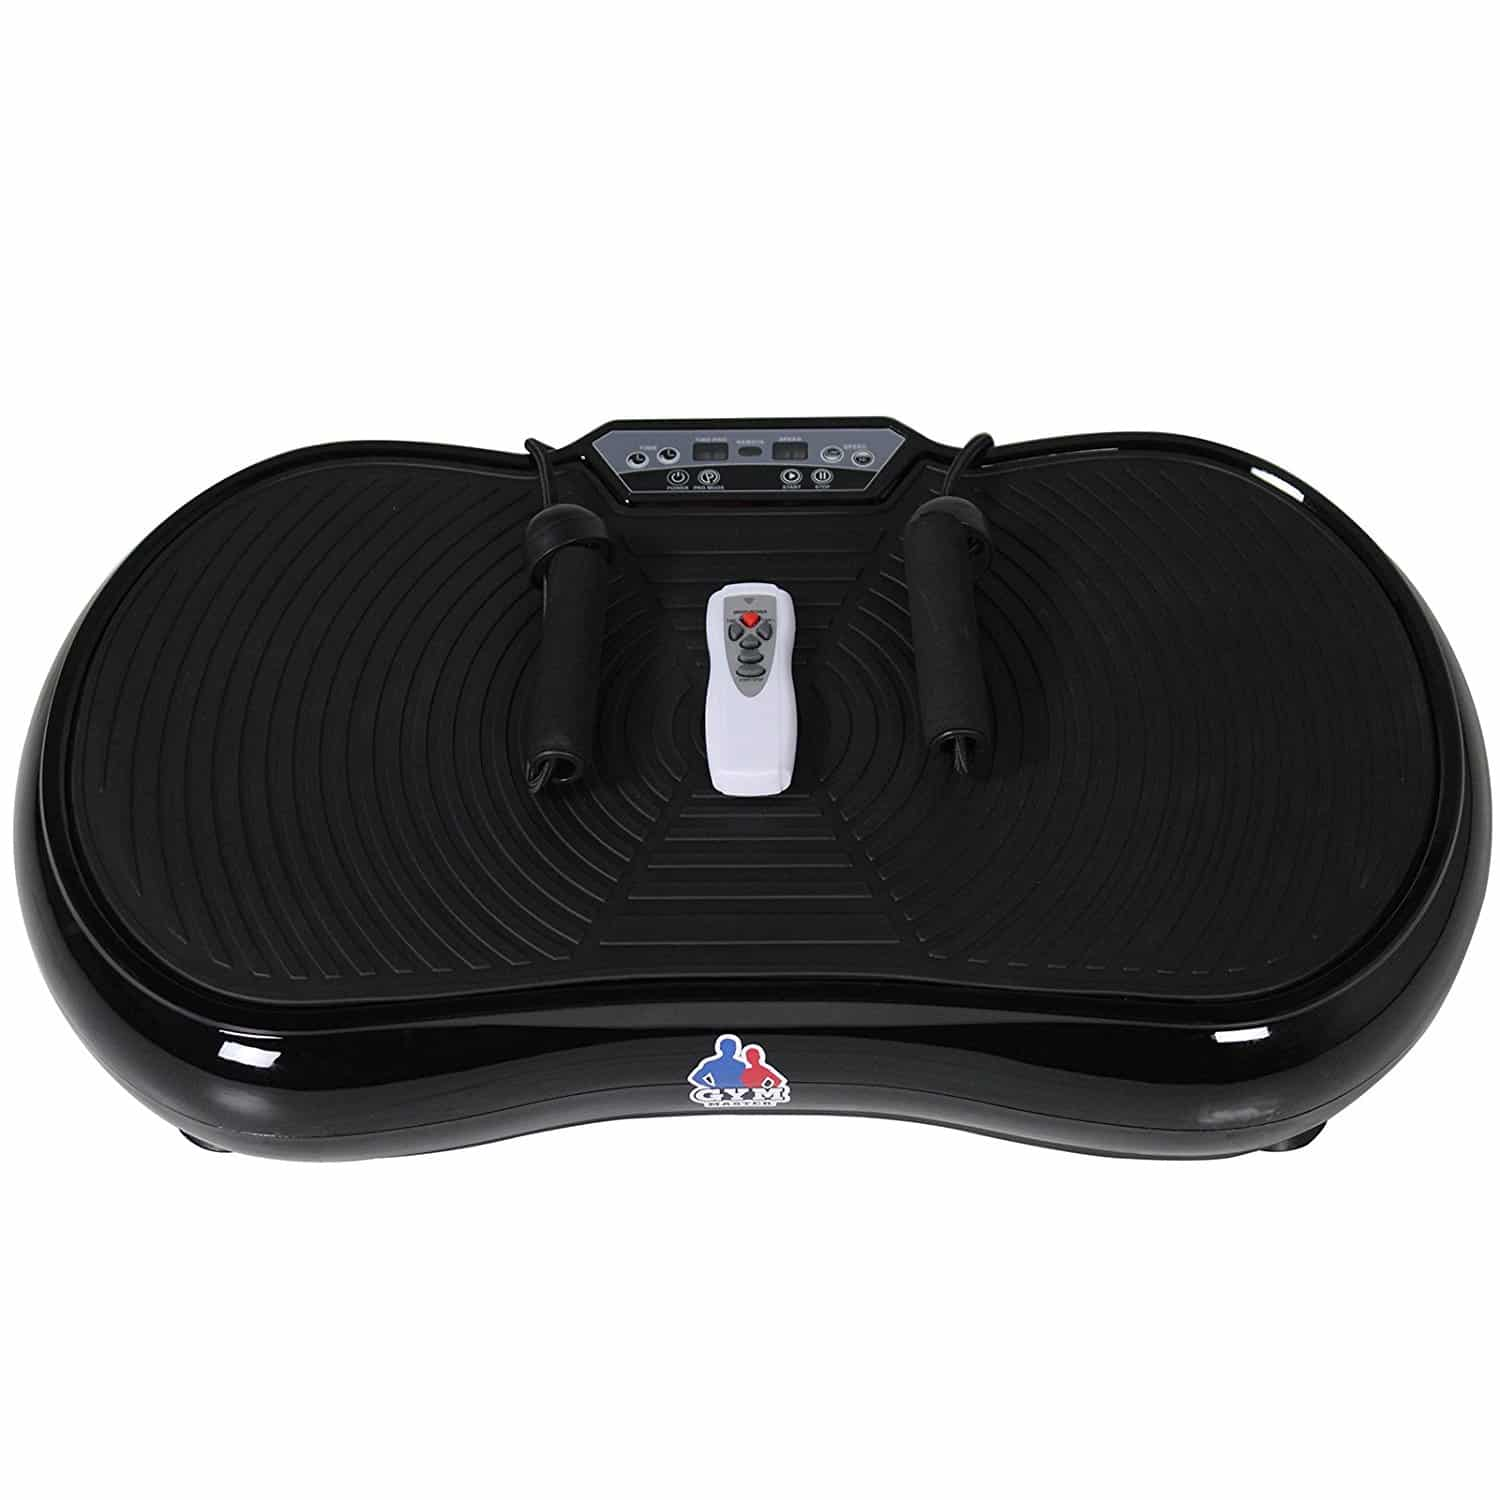 Gym Master Slim Crazy Fit Vibration Plate With Silent Drive Motor